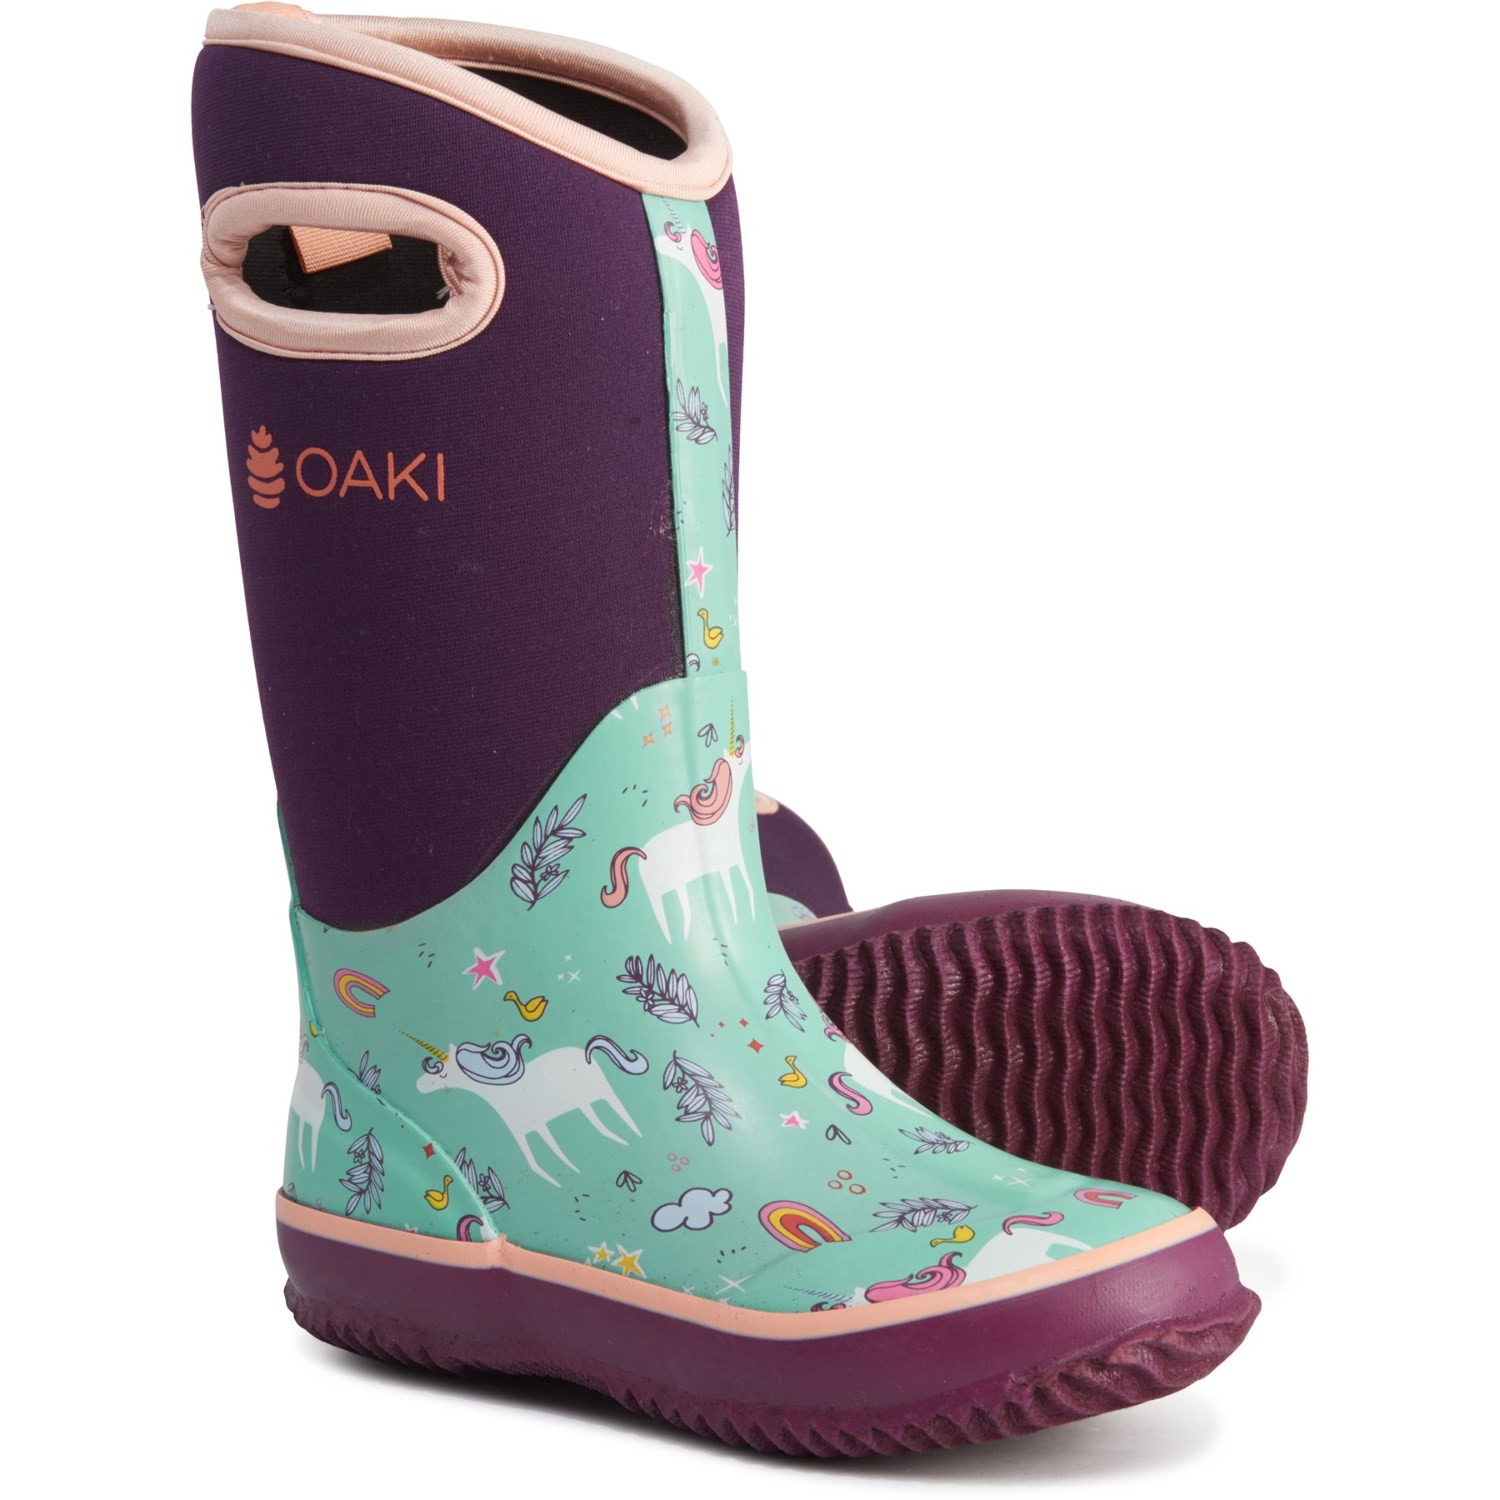 de6b499d956a4 Oaki Snooty Unicorn Neoprene Boots (For Girls) - Save 25%